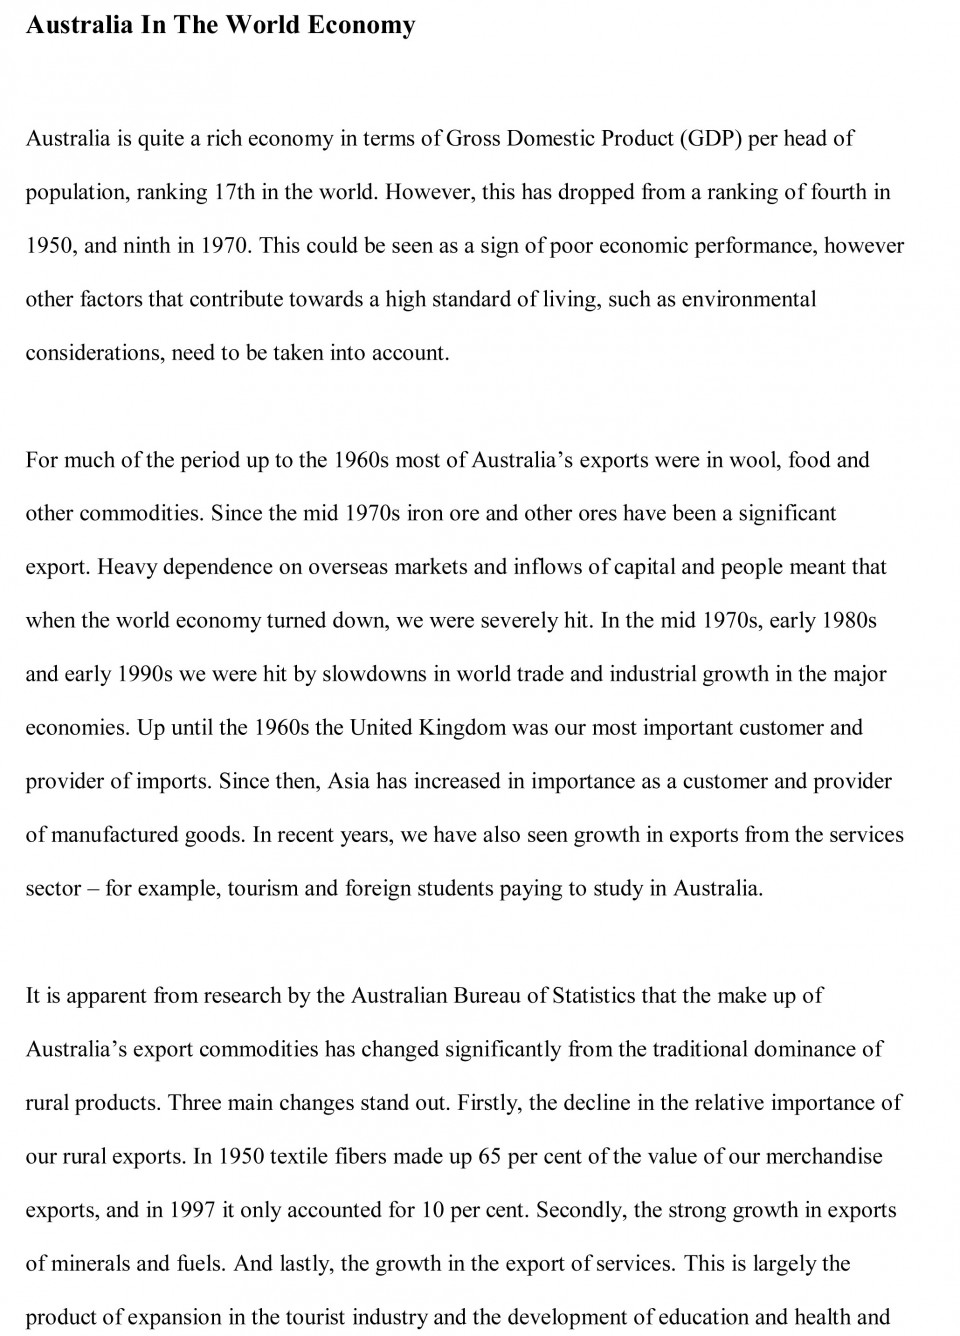 014 Globalization Conclusion Essay Example Economics Free Wonderful 960